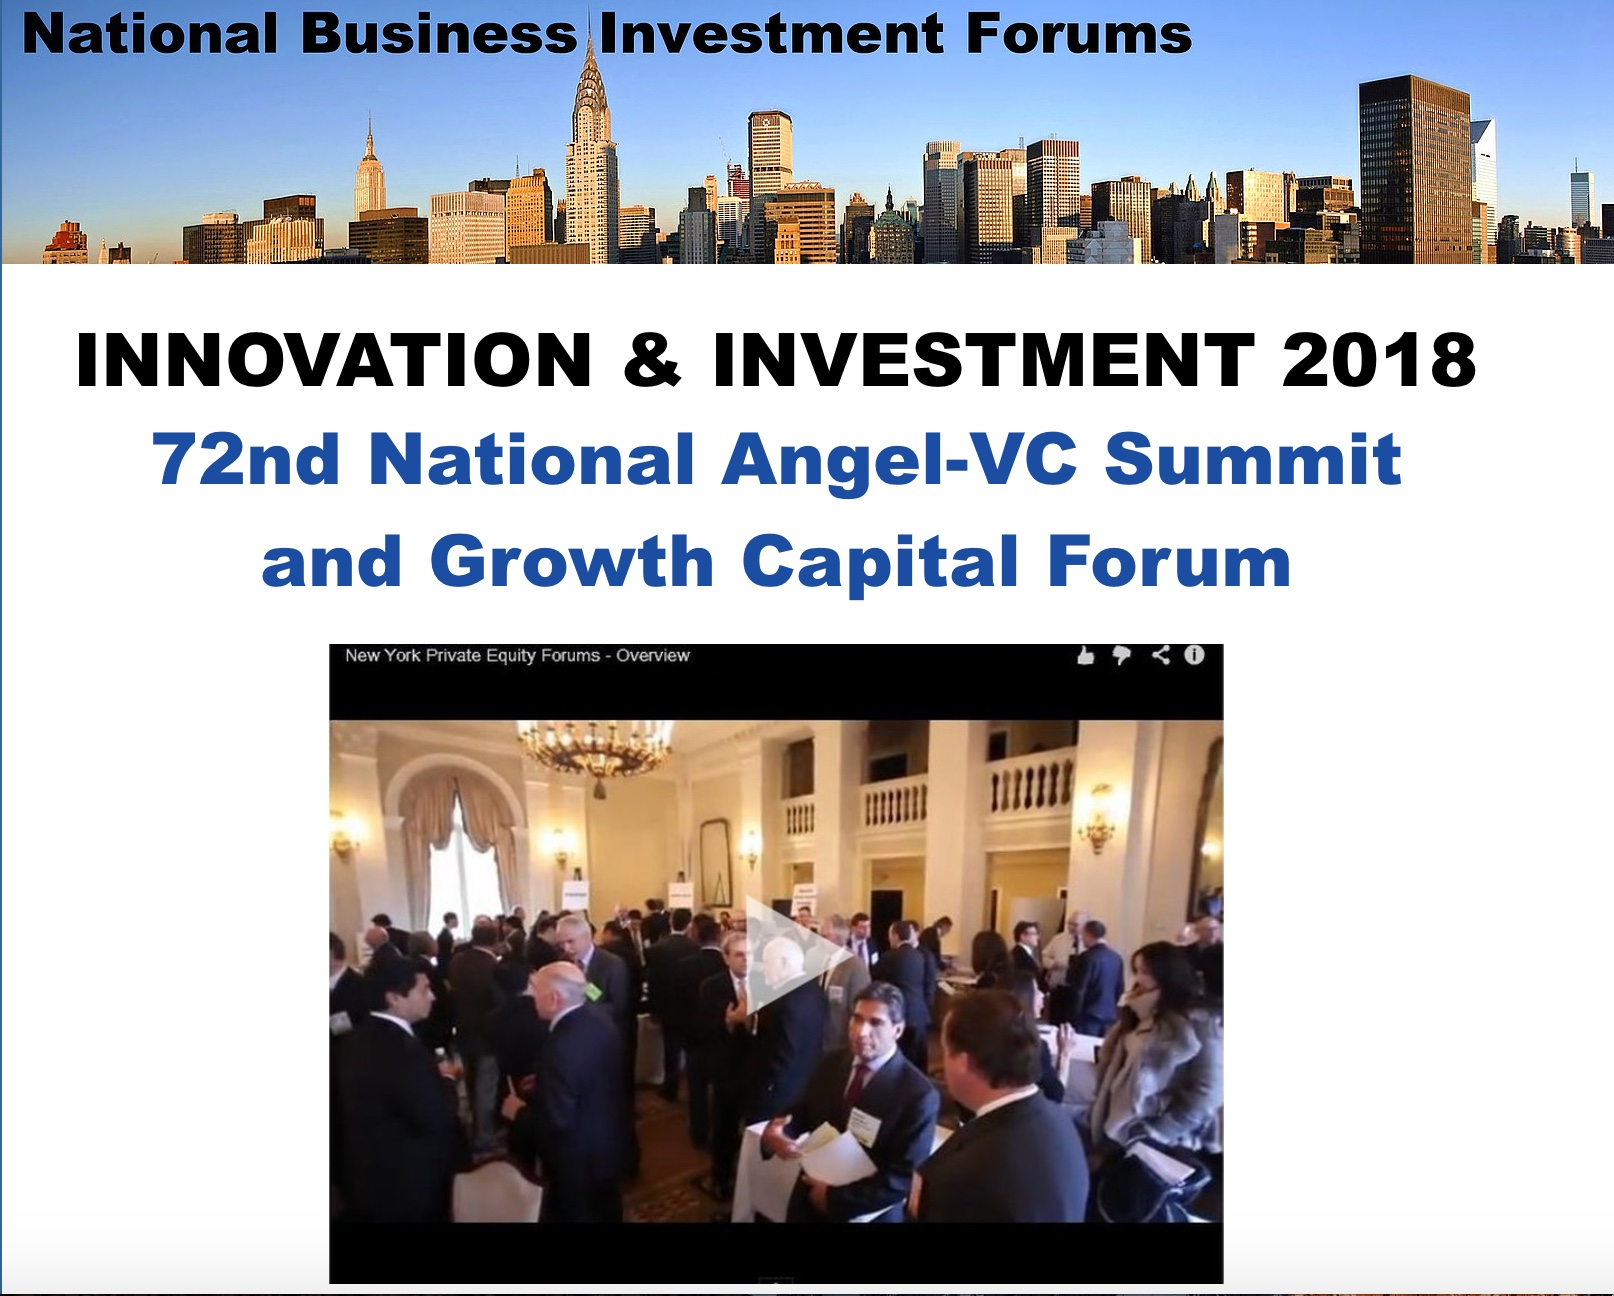 National Business Forum_Yale Club 26JUL18.jpeg